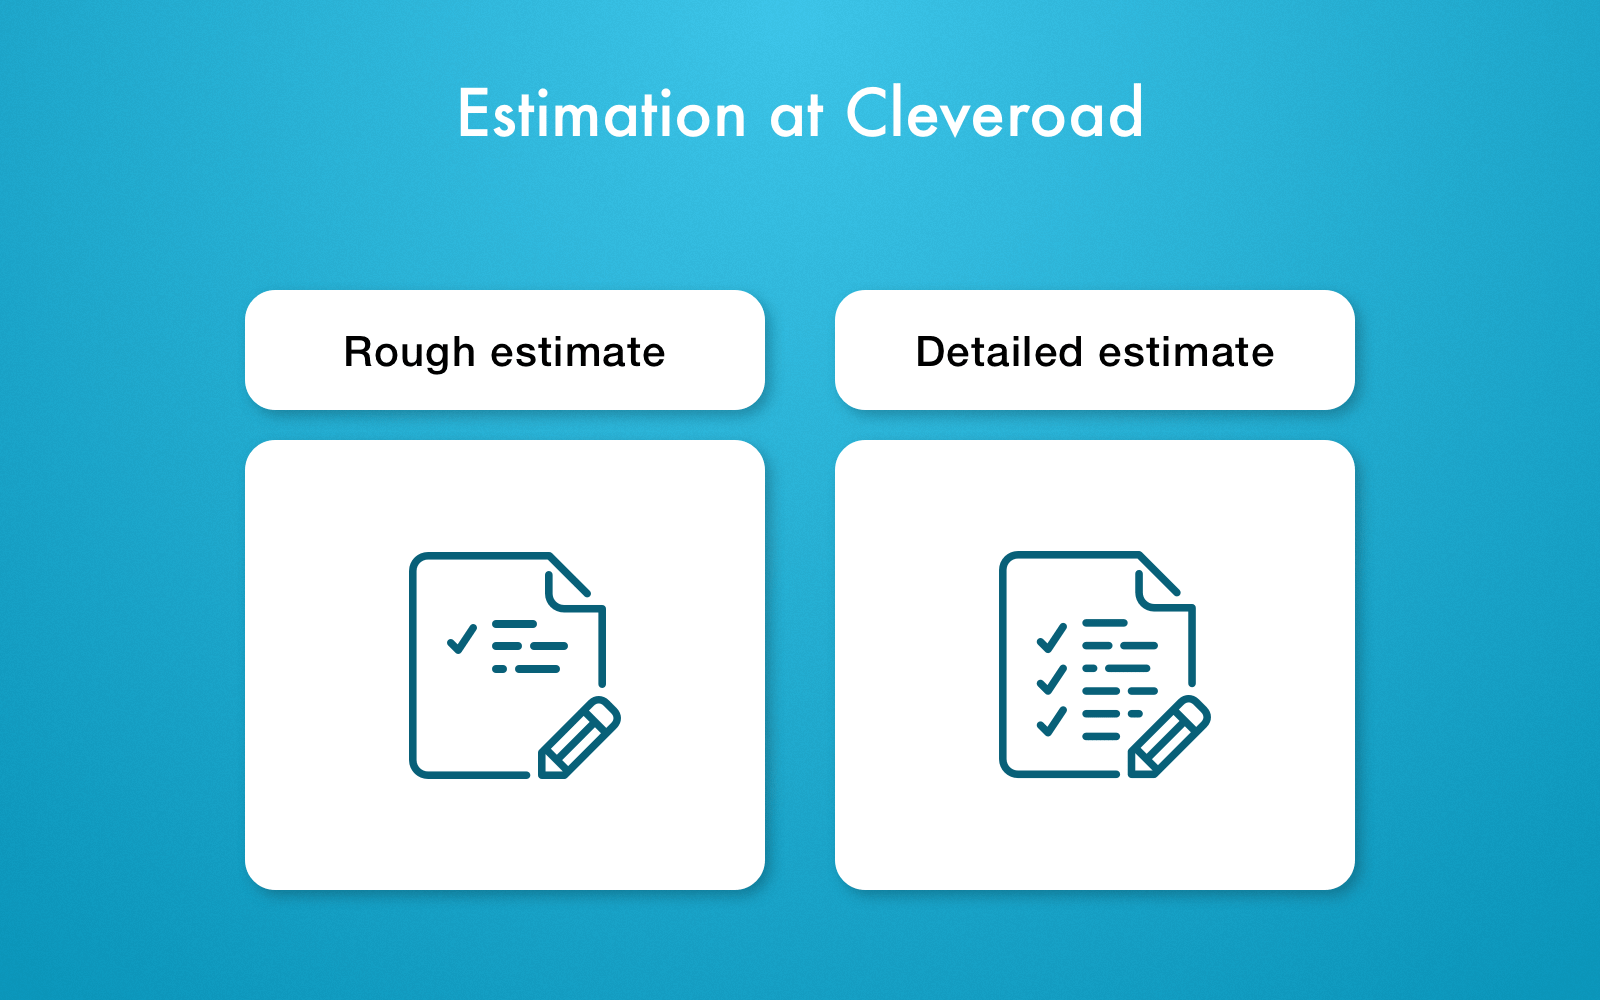 Software Development Estimation at Cleveroad